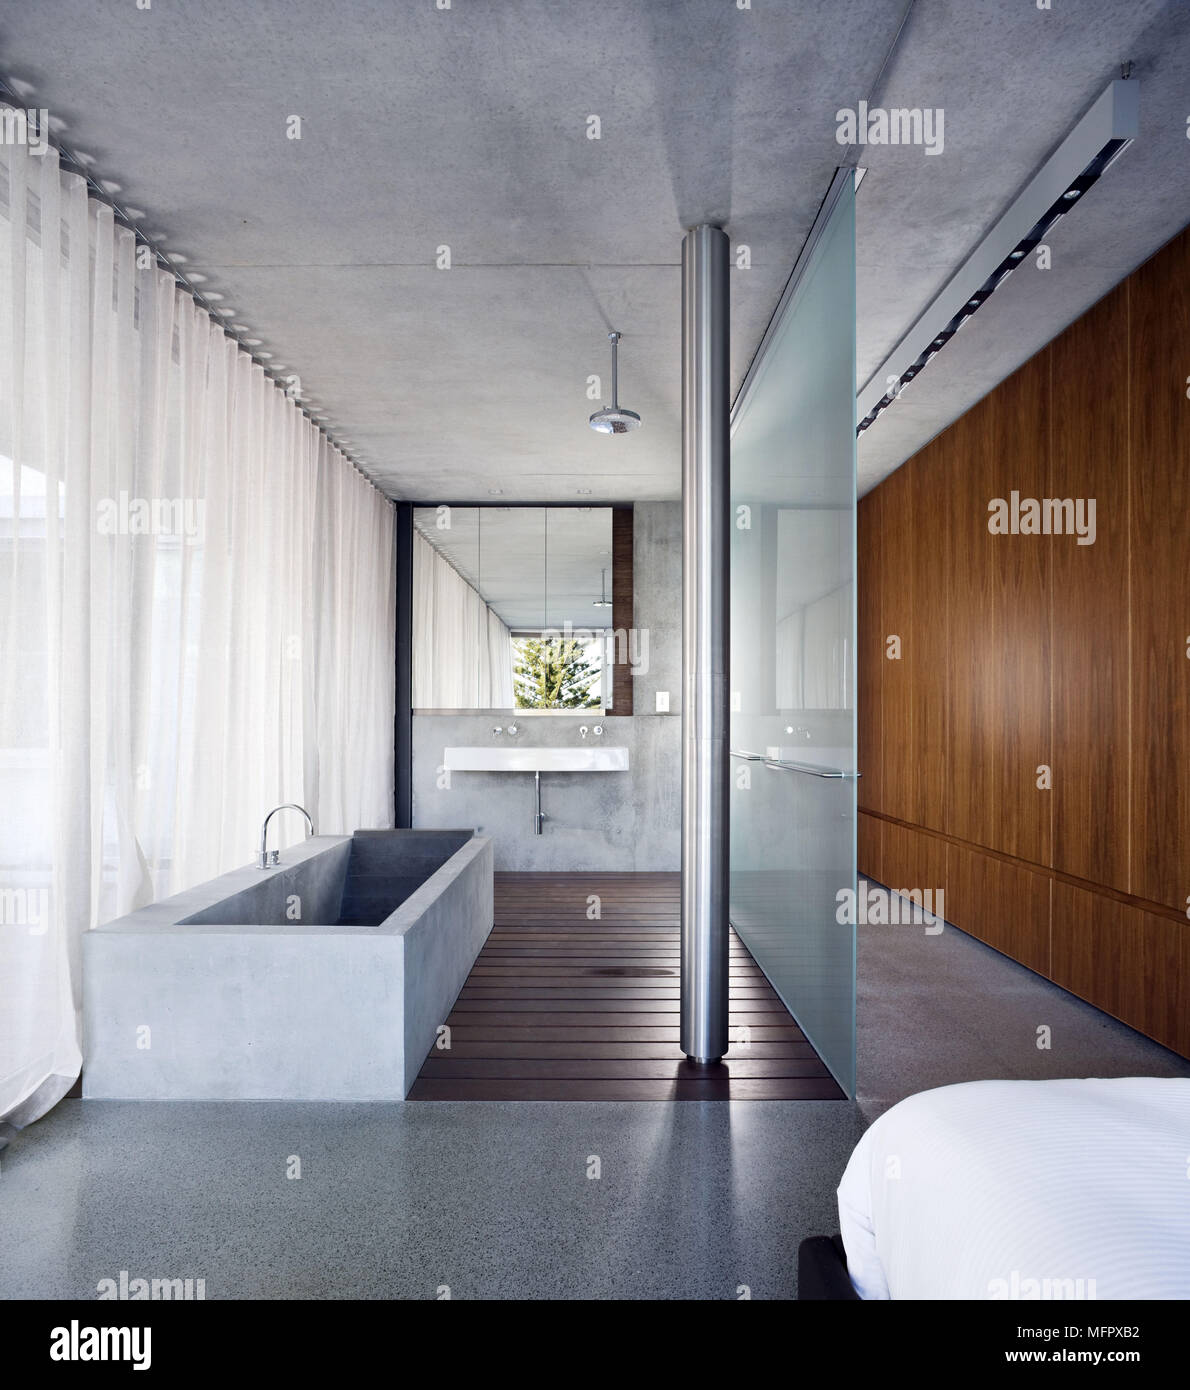 Stone Freestanding Bathtub In Modern Bathroom With Opaque Glass - Glass partition wall for bathroom